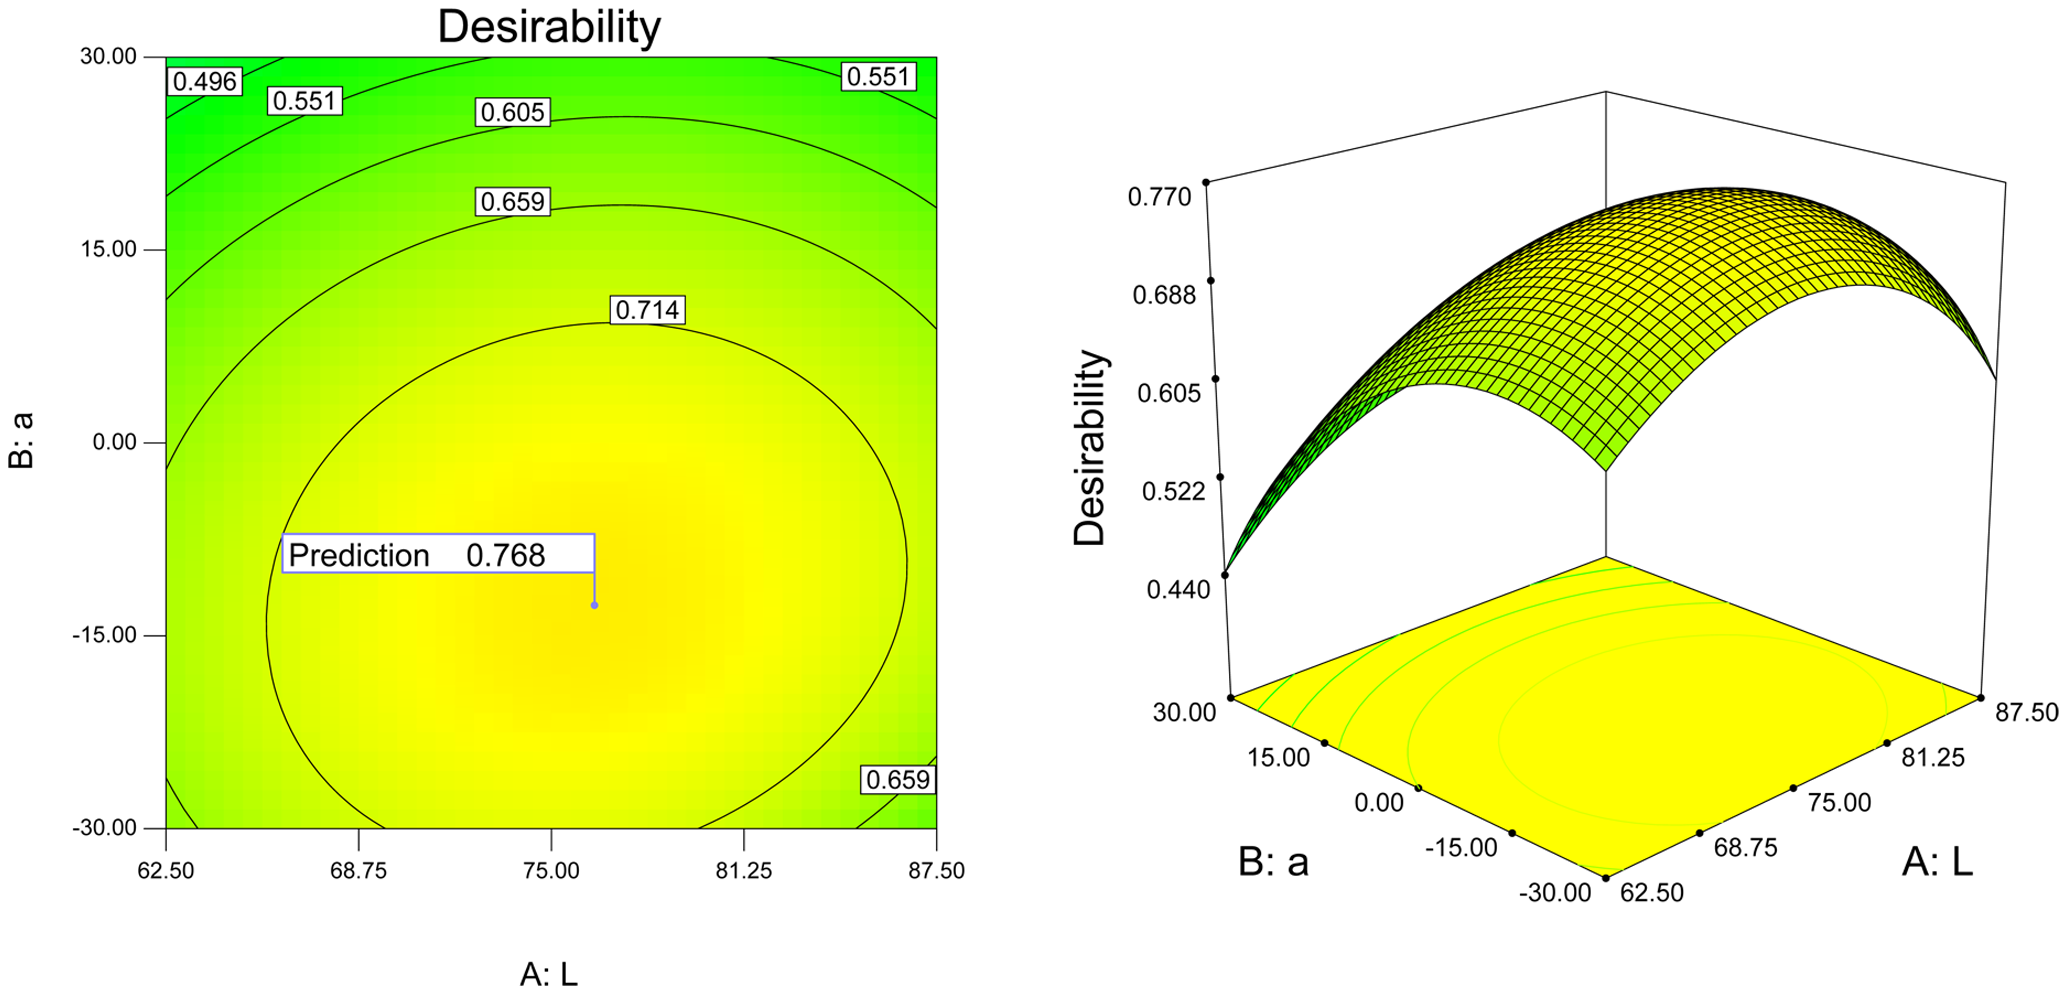 This is the 3-D plot of the total desirability of the colors.